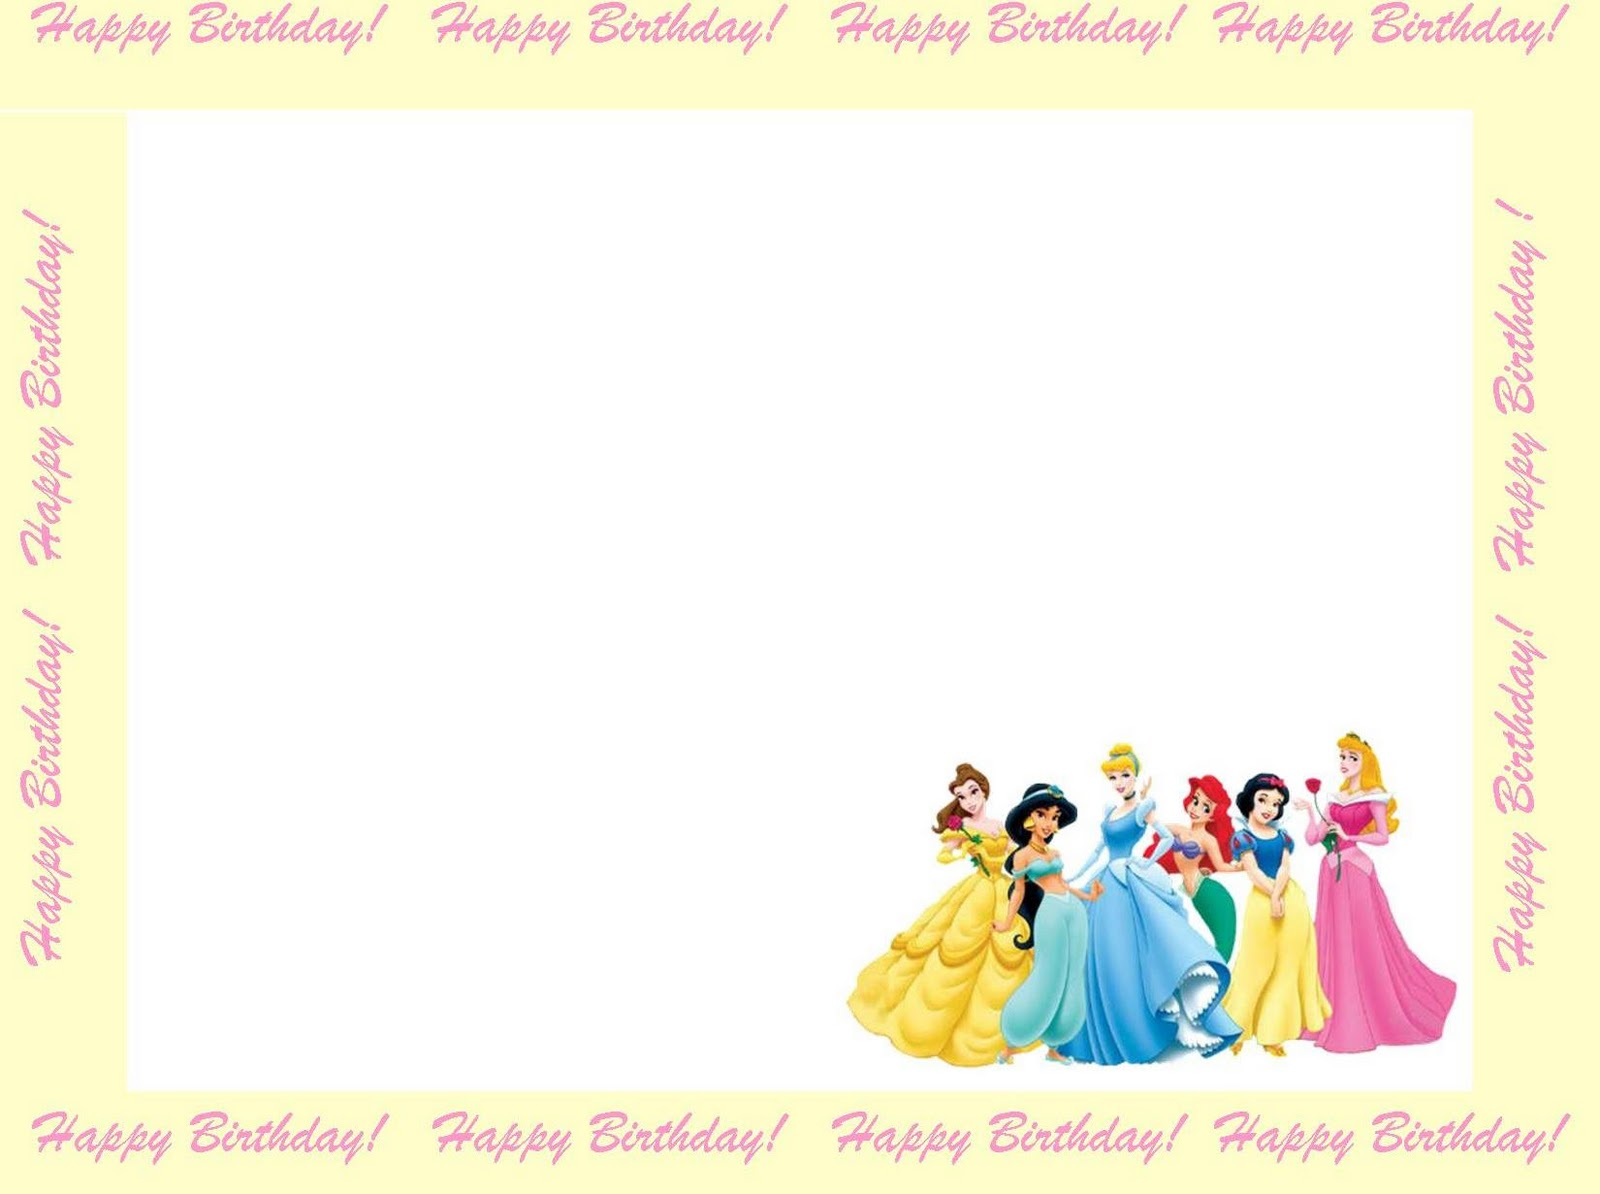 free printable birthday borders ; 30e8eccde154fe1e4f8d842ce44a3179